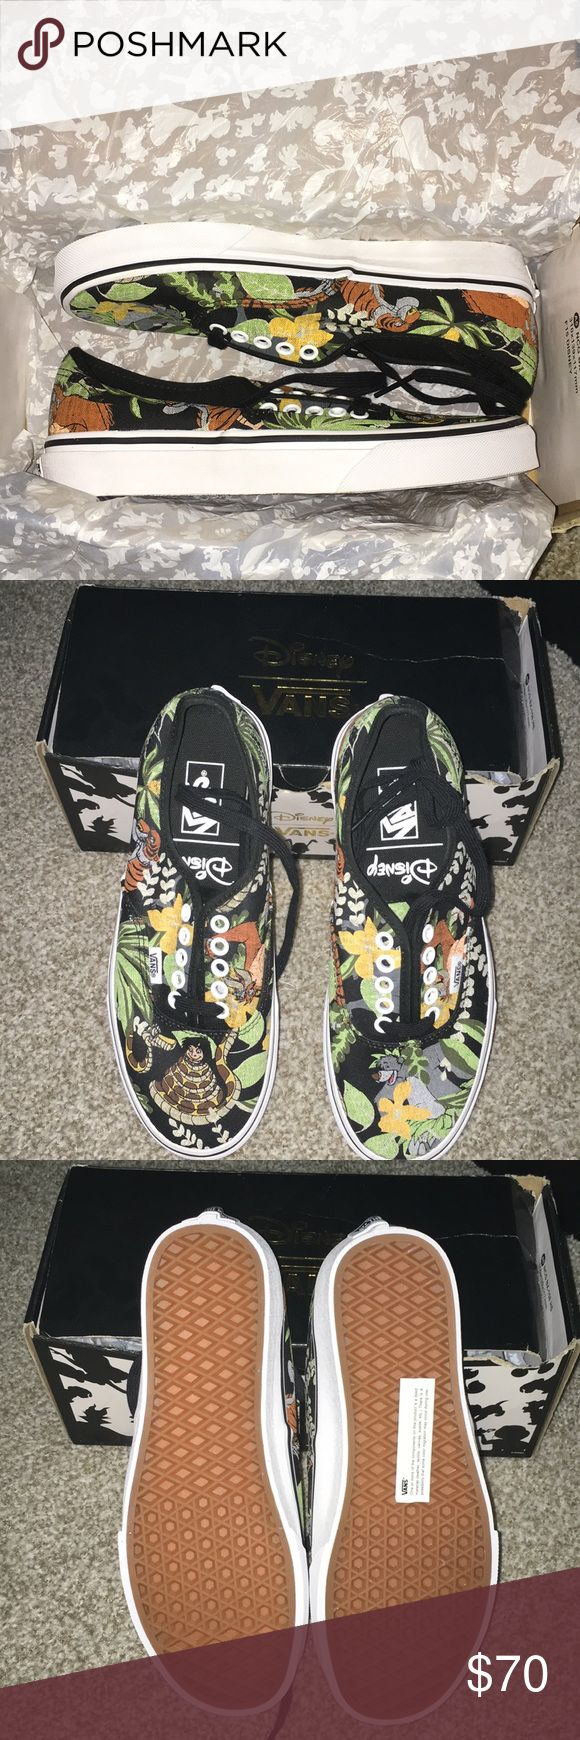 Vans Disney Collection the jungle book In new condition. Size is 6.5 Mens / 8 women's. Please note that box will  be included but it is a little beat up. Any questions please ask. I am open for offers! Vans Shoes Ankle Boots & Booties